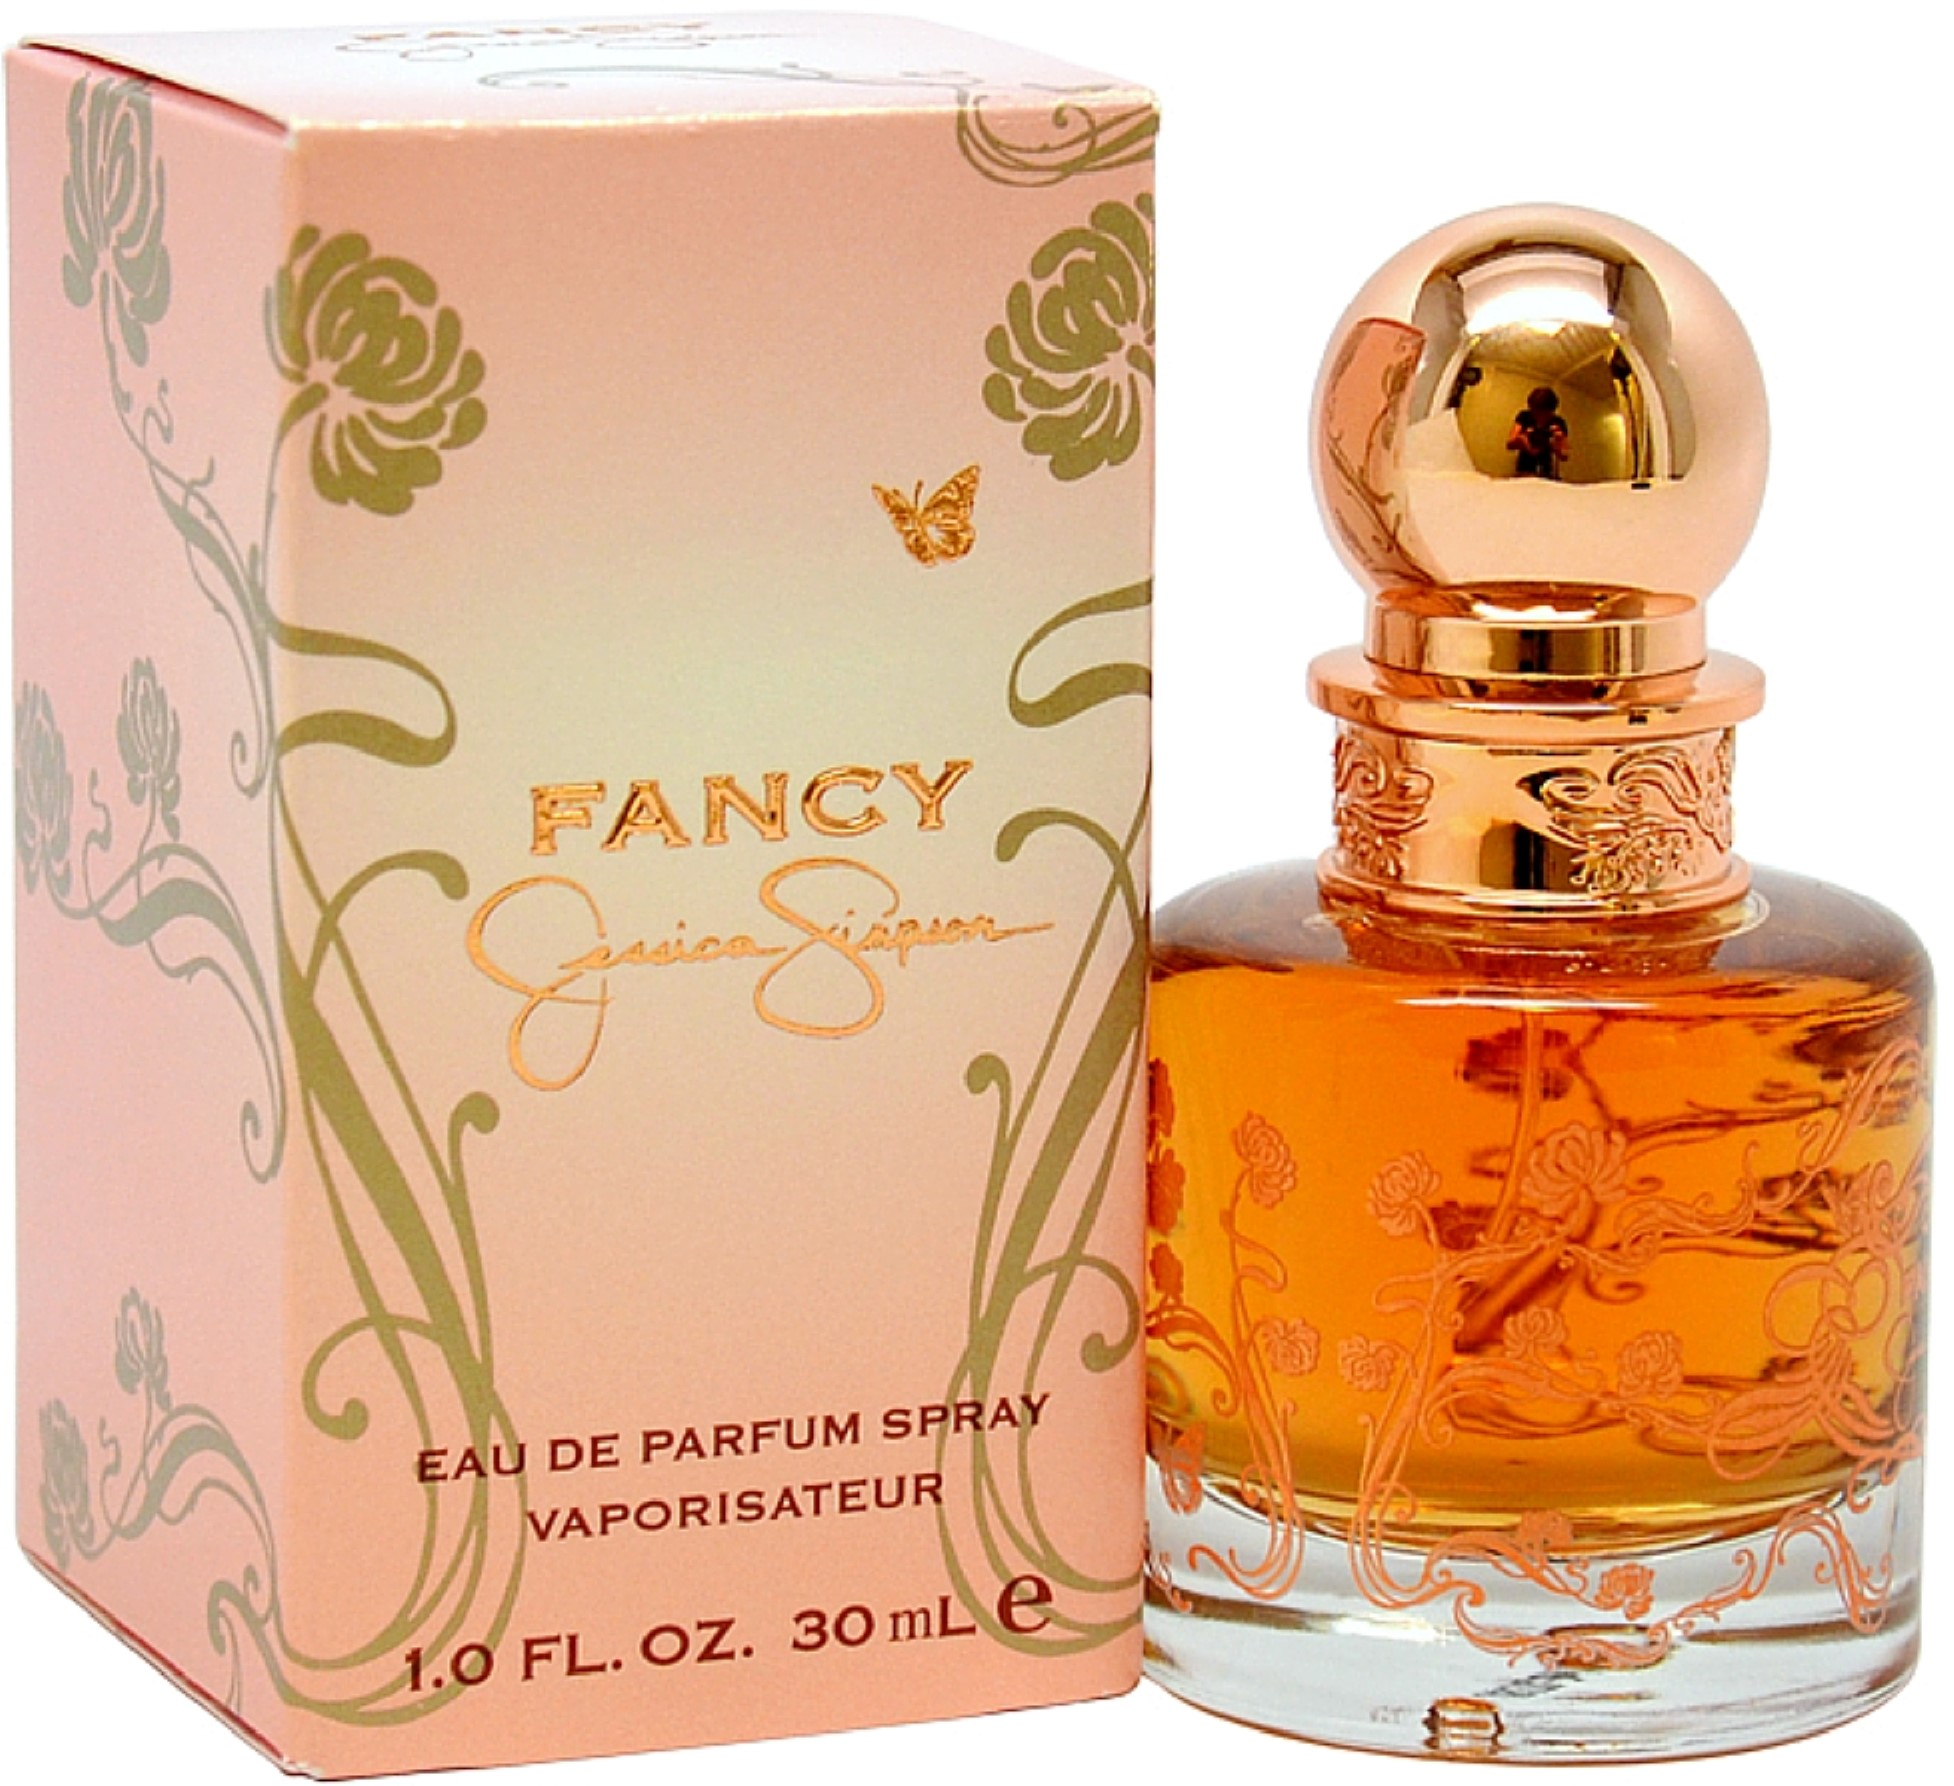 Jessica Simpson Fancy Eau De Parfum Spray 1 oz (Pack of 2)